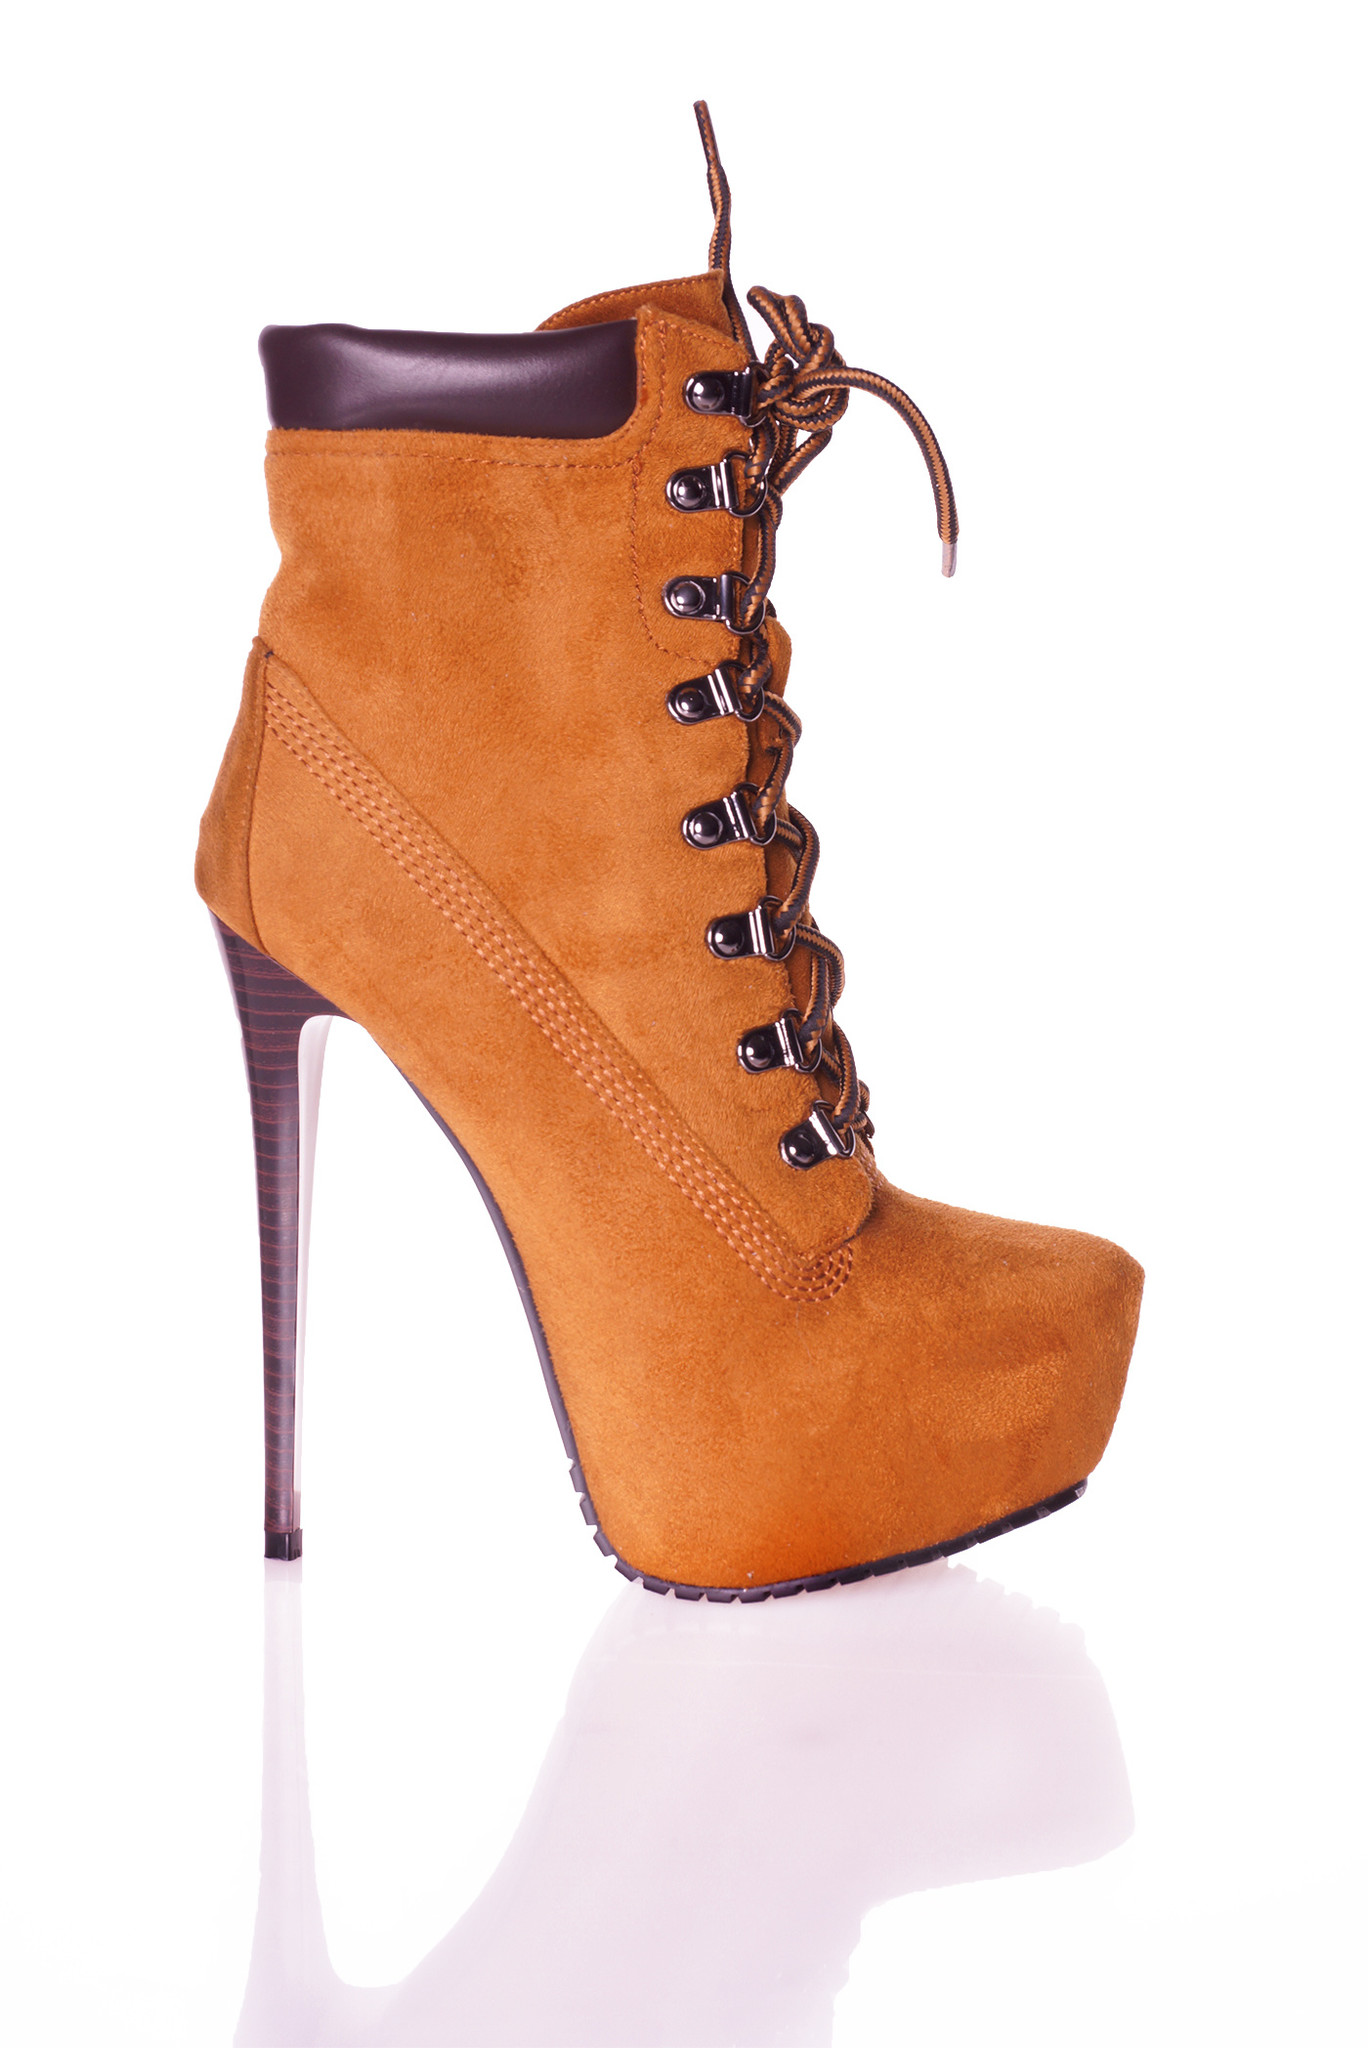 CoCo Timberland high heels lace-up with platform